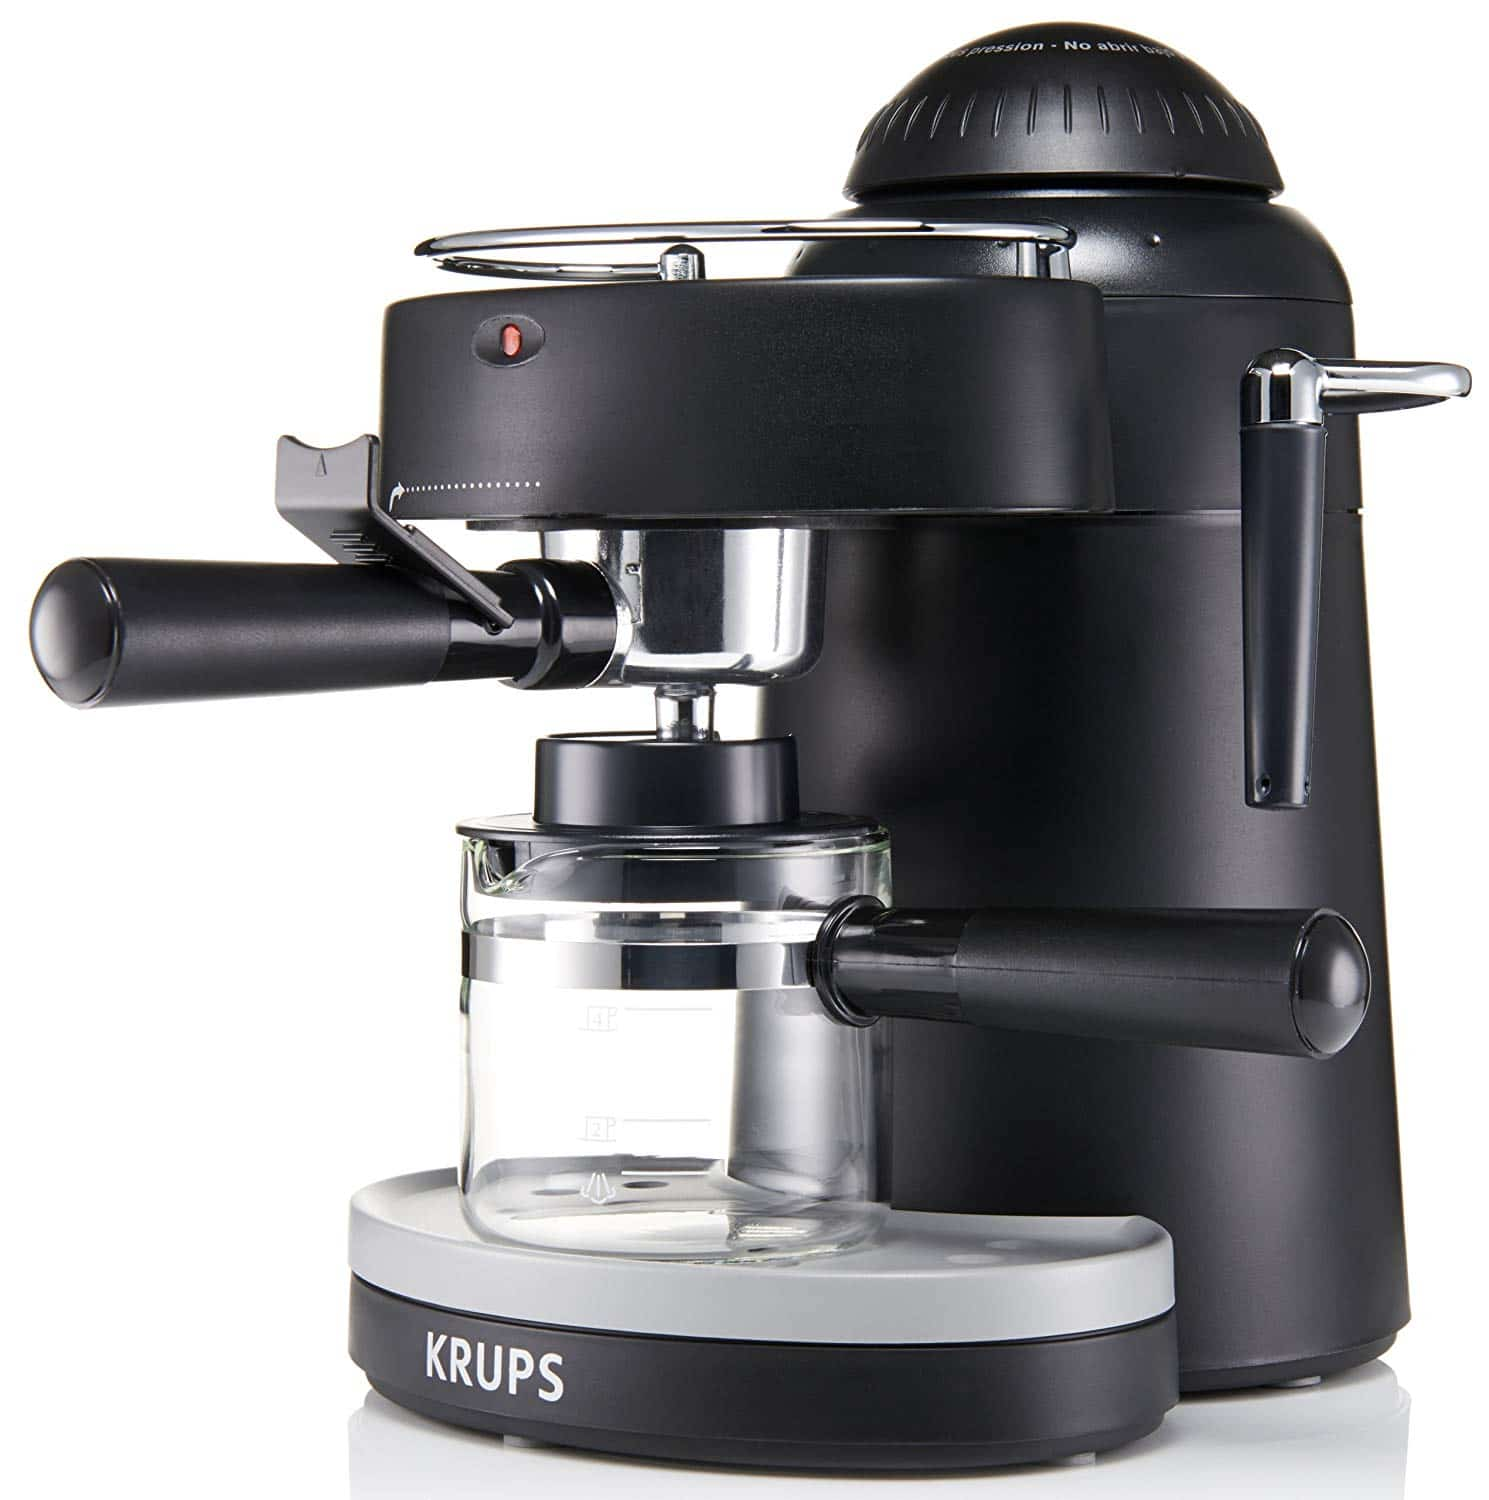 KRUPS XP1000 Steam Espresso Machine Coffeeinblog